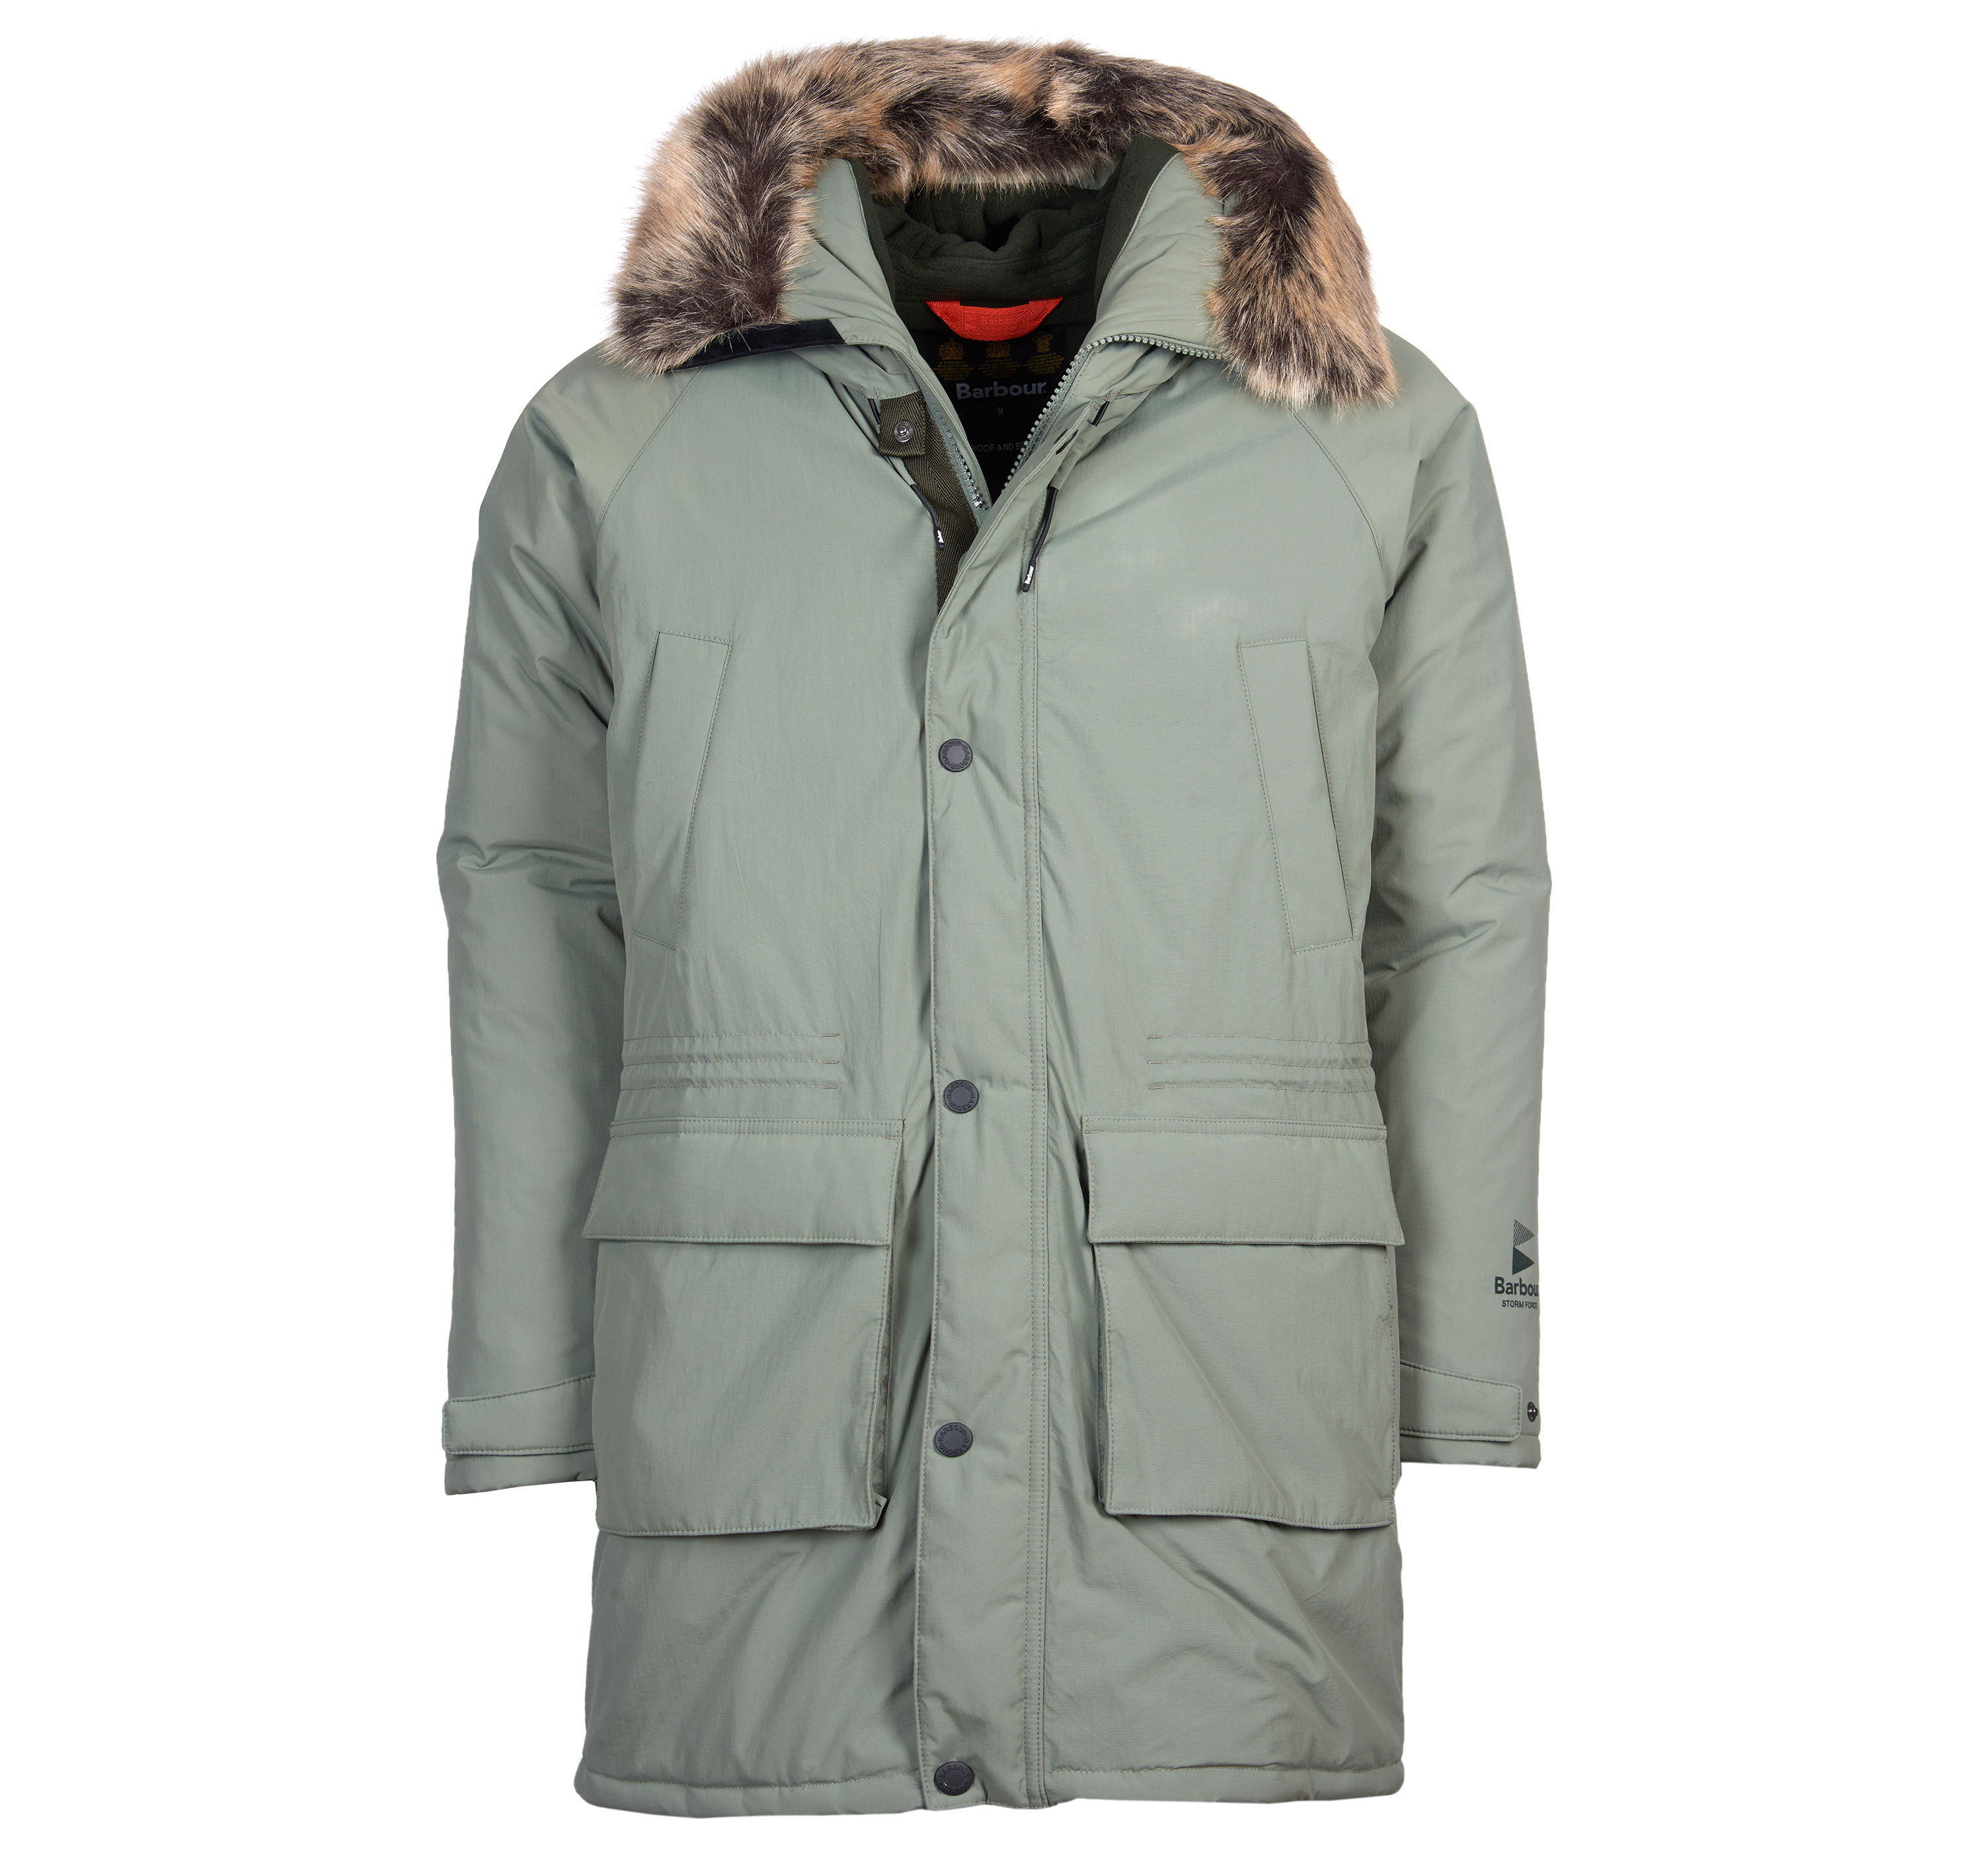 Barbour Gustnado Waterproof Breathable Jacket Green FIT: Tailored